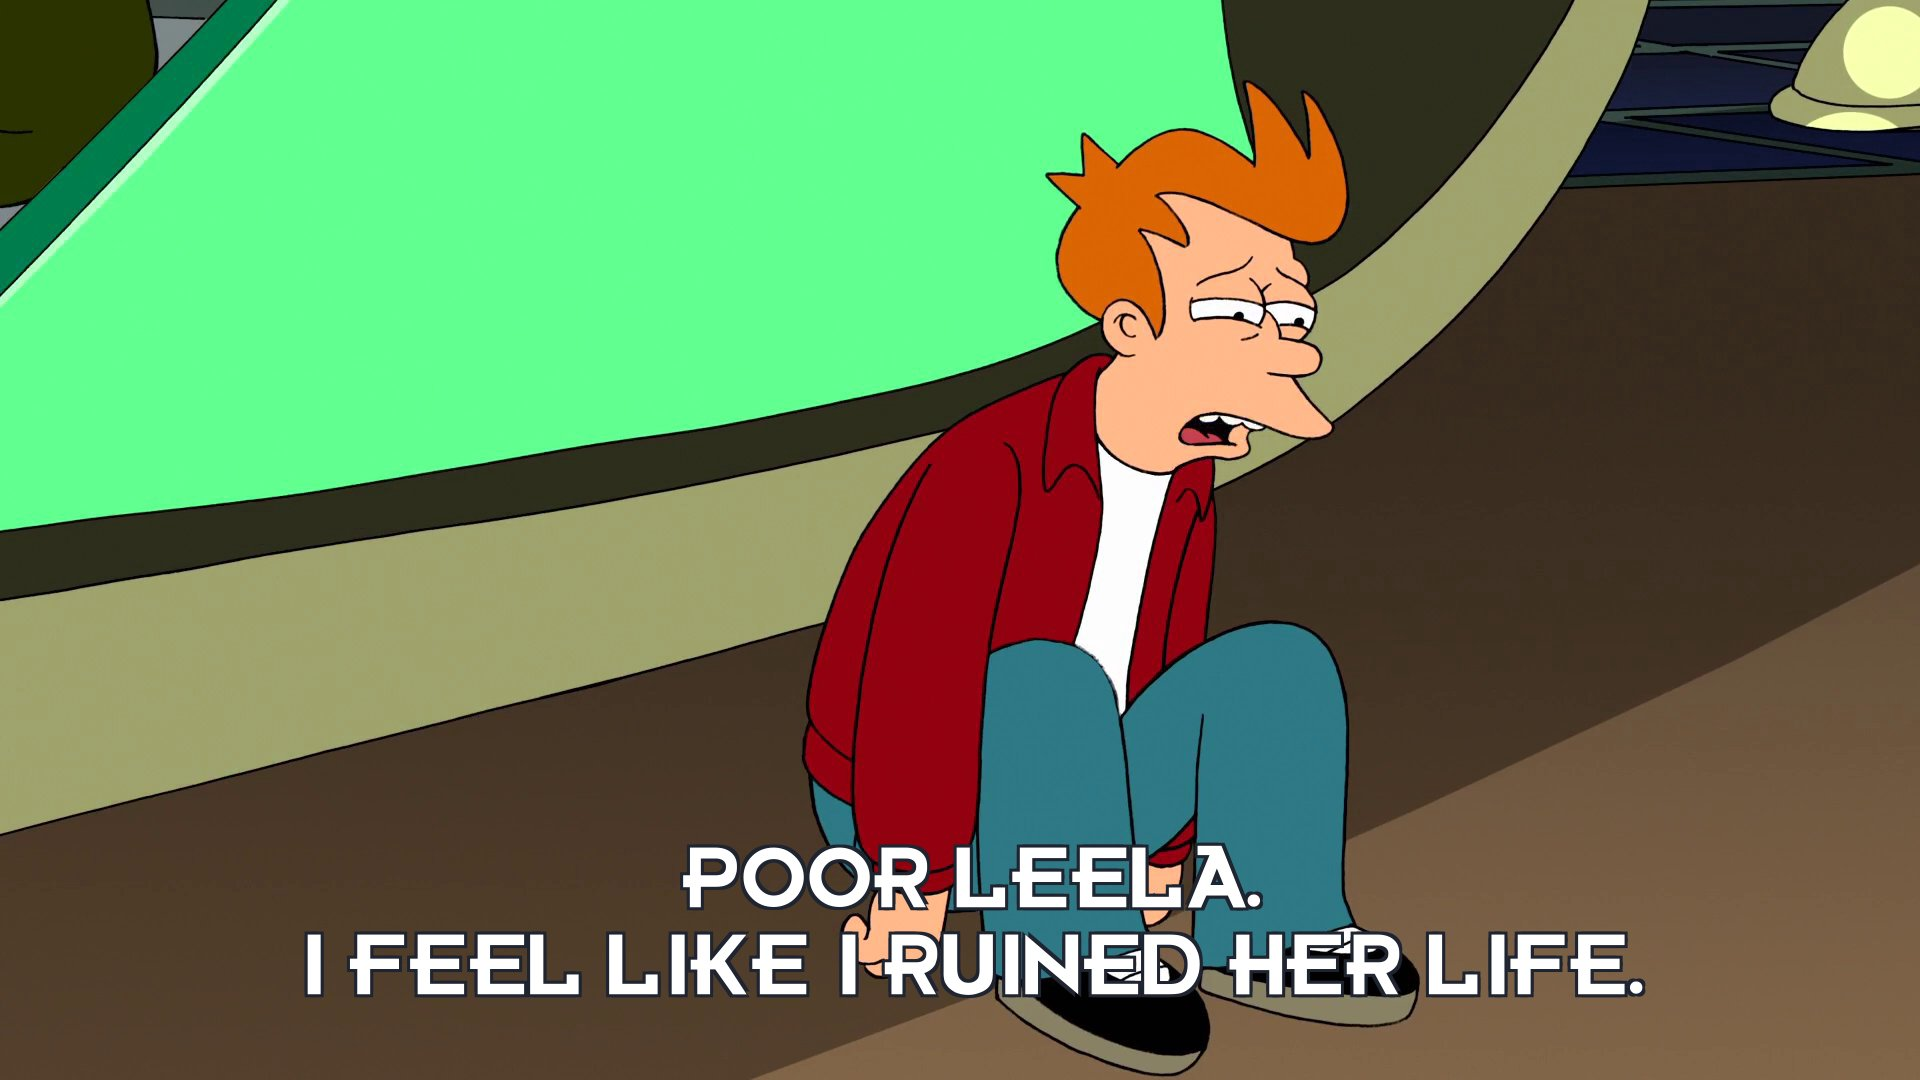 Philip J Fry: Poor Leela. I feel like I ruined her life.